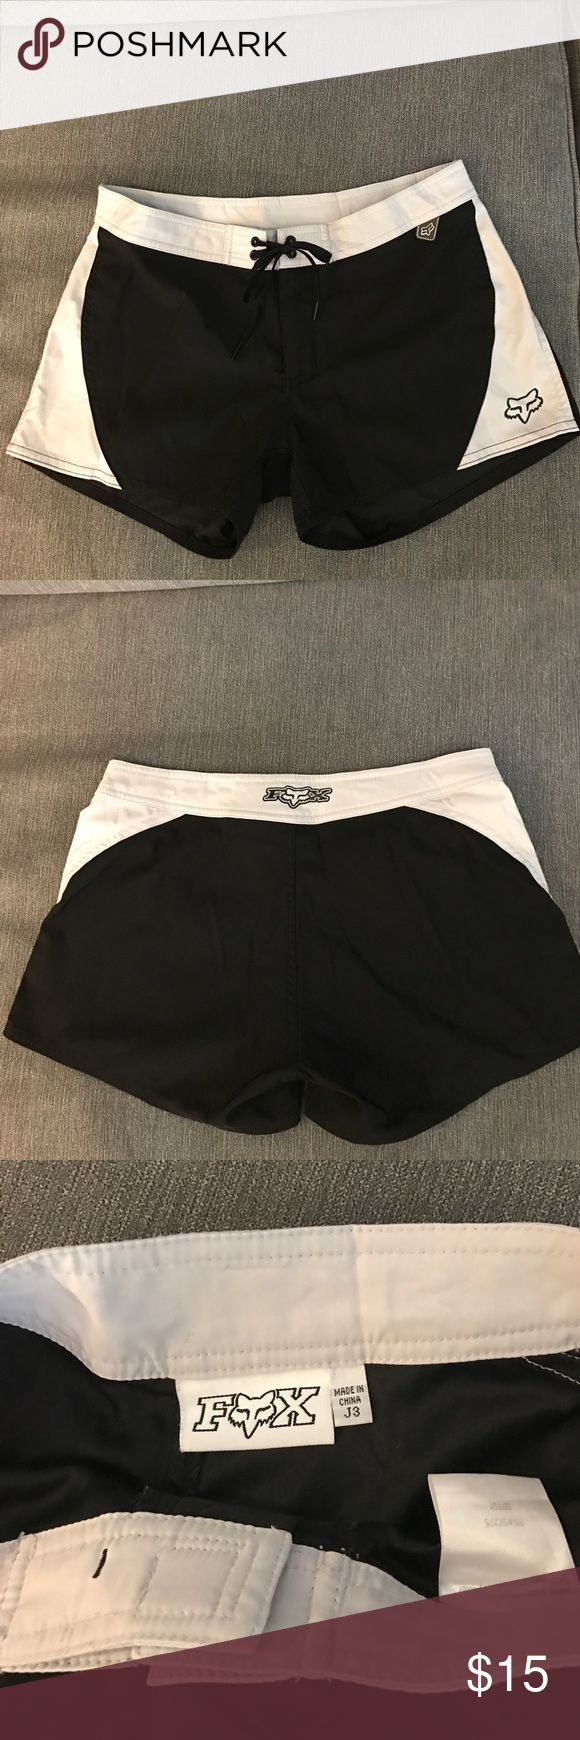 FOX Racing black & gray boardshorts sz 3 (juniors) Black & light gray boardshorts by FOX Racing. Draw string tie at the waist and FOX logos on the front and back of shorts. Great condition, no signs of wear! Juniors size 3 but should fit a ladies size 2 as well :) Fox Shorts